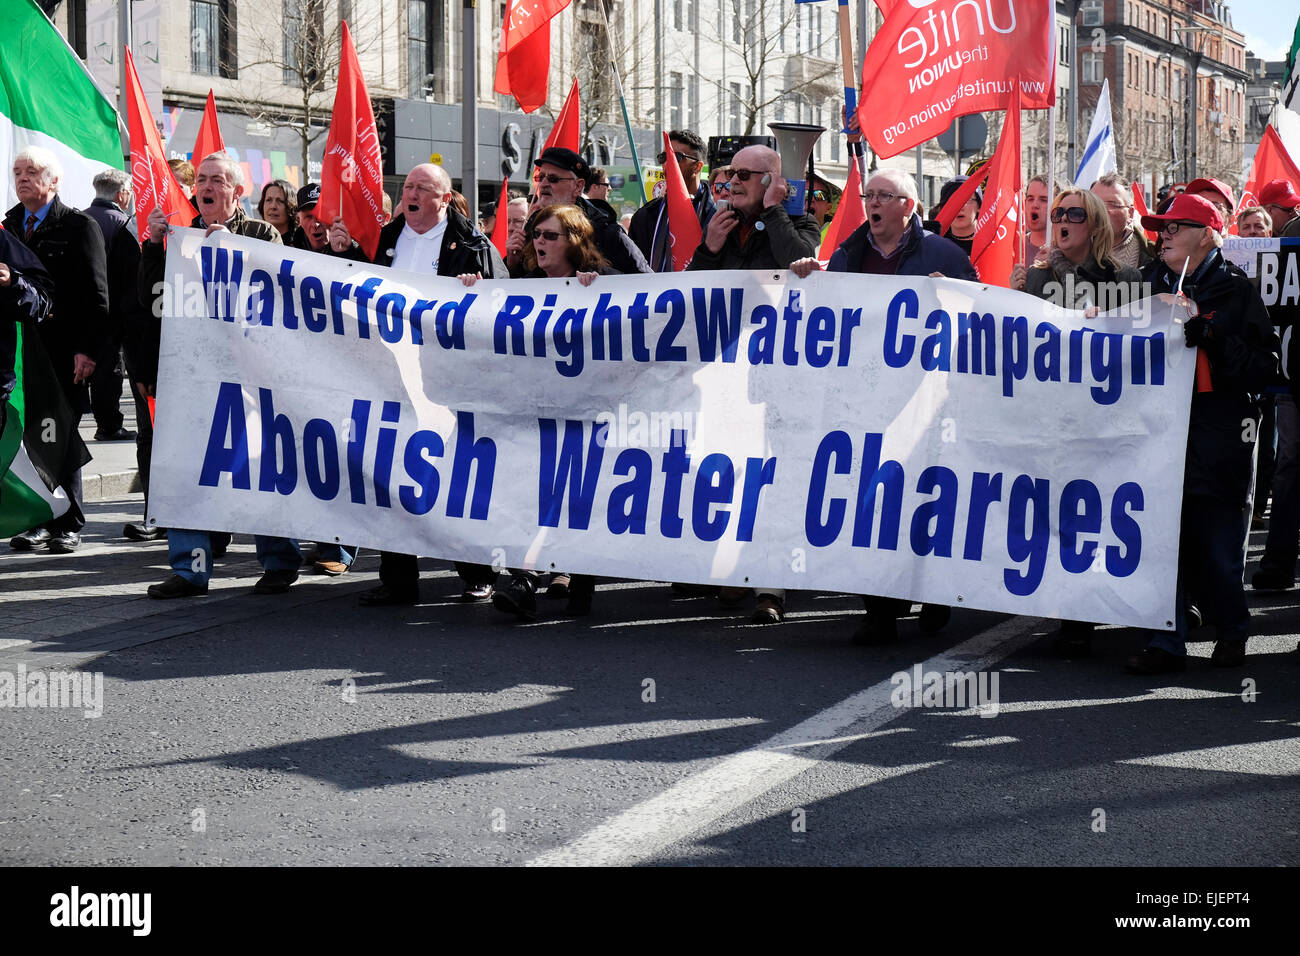 Abolish Water Charges banner at Anti-water charges protests march in O'Connell Street Dublin Ireland in April - Stock Image